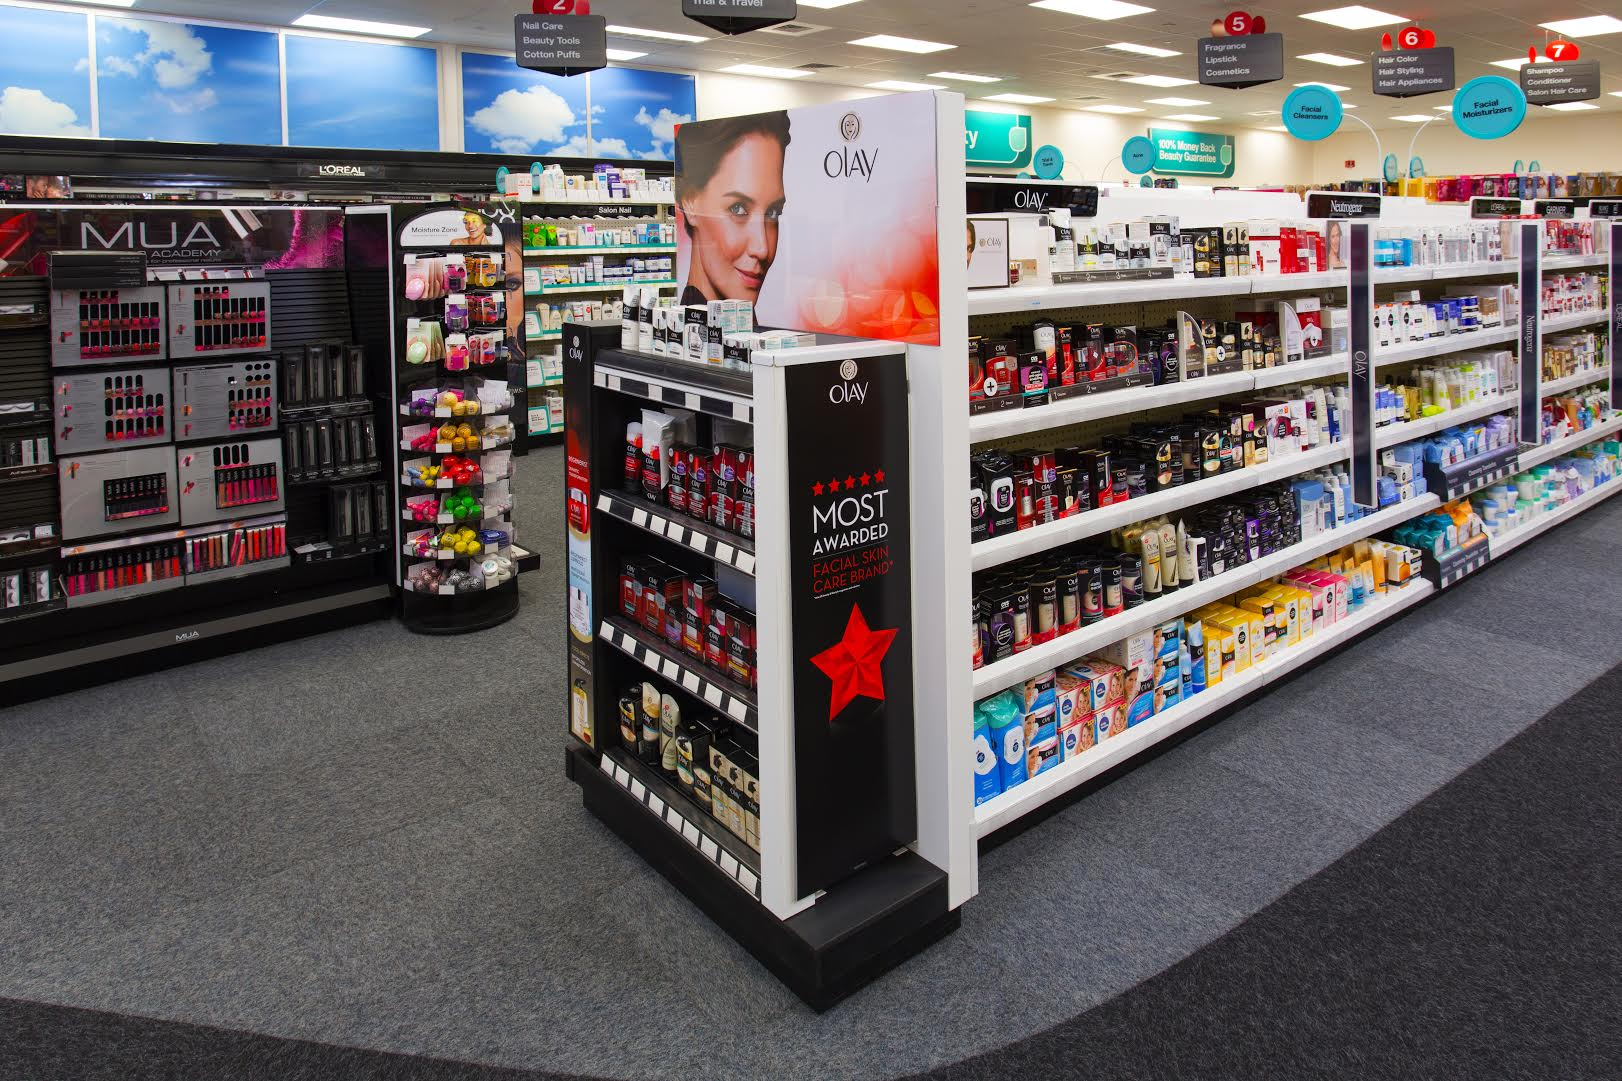 CVS/pharmacy New Store Enhancements in Health and Beauty +